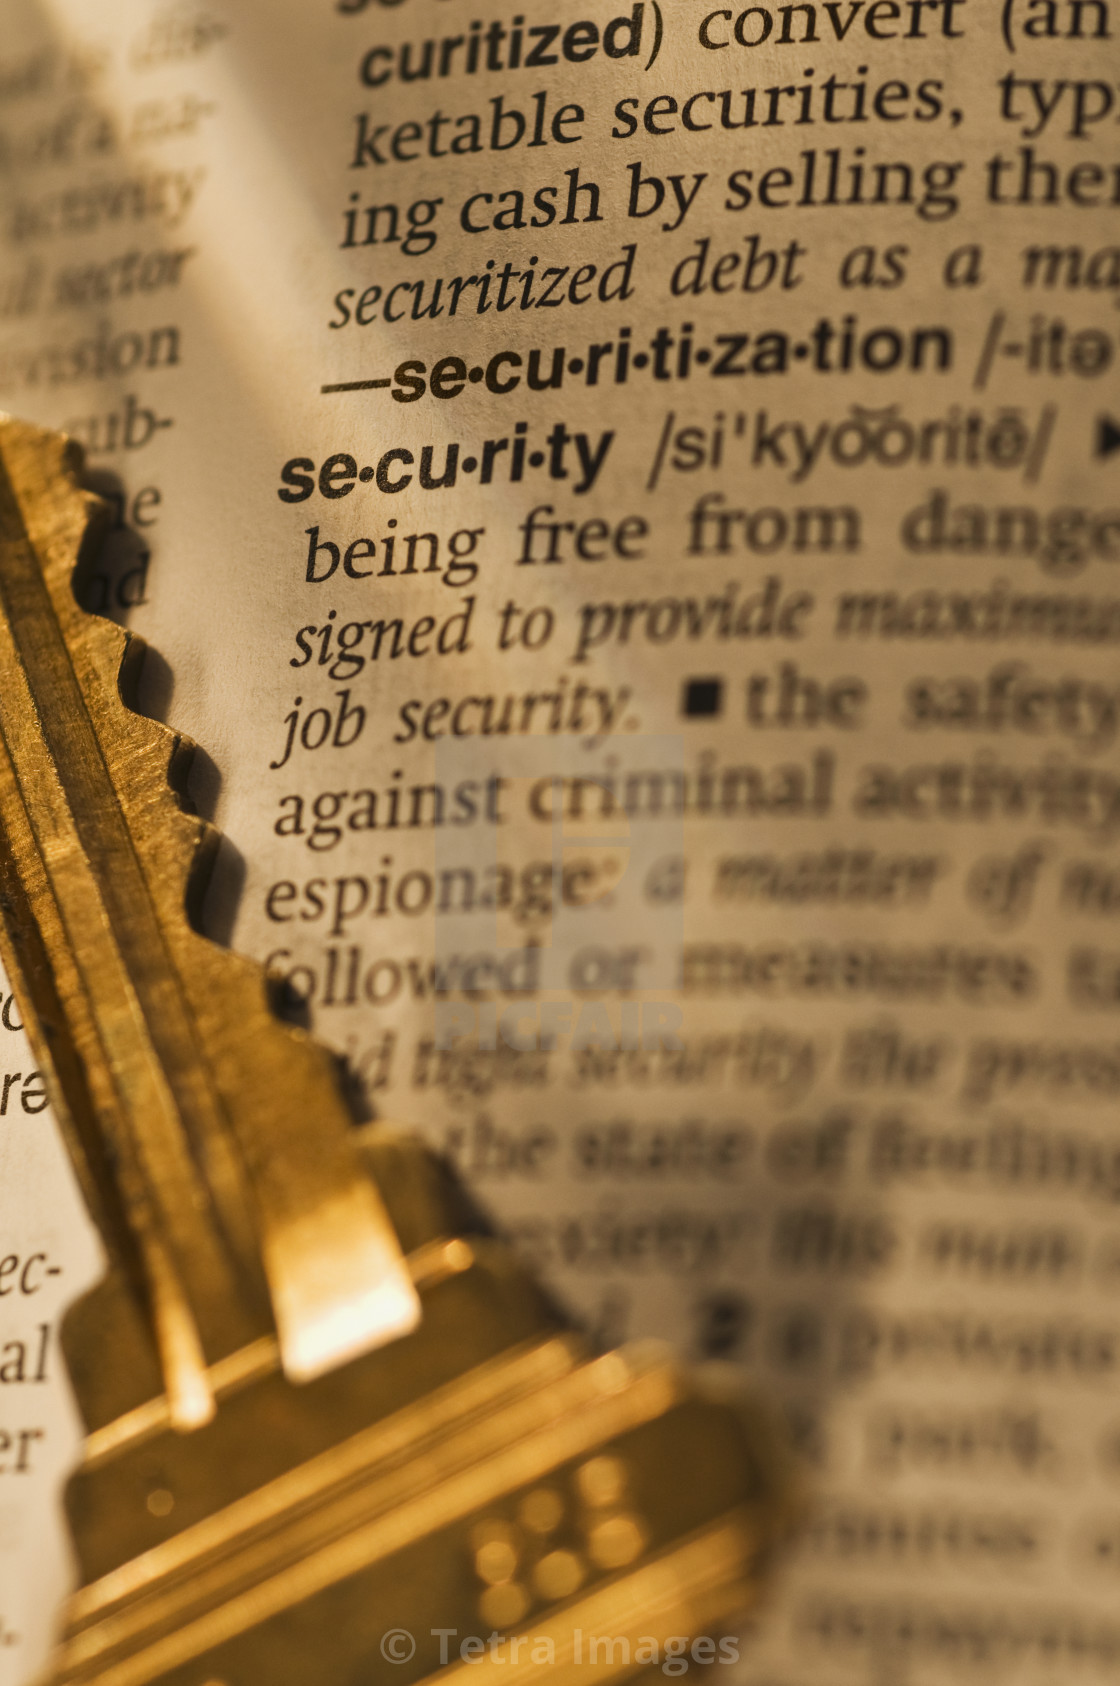 Definition of security in dictionary and key - License, download or